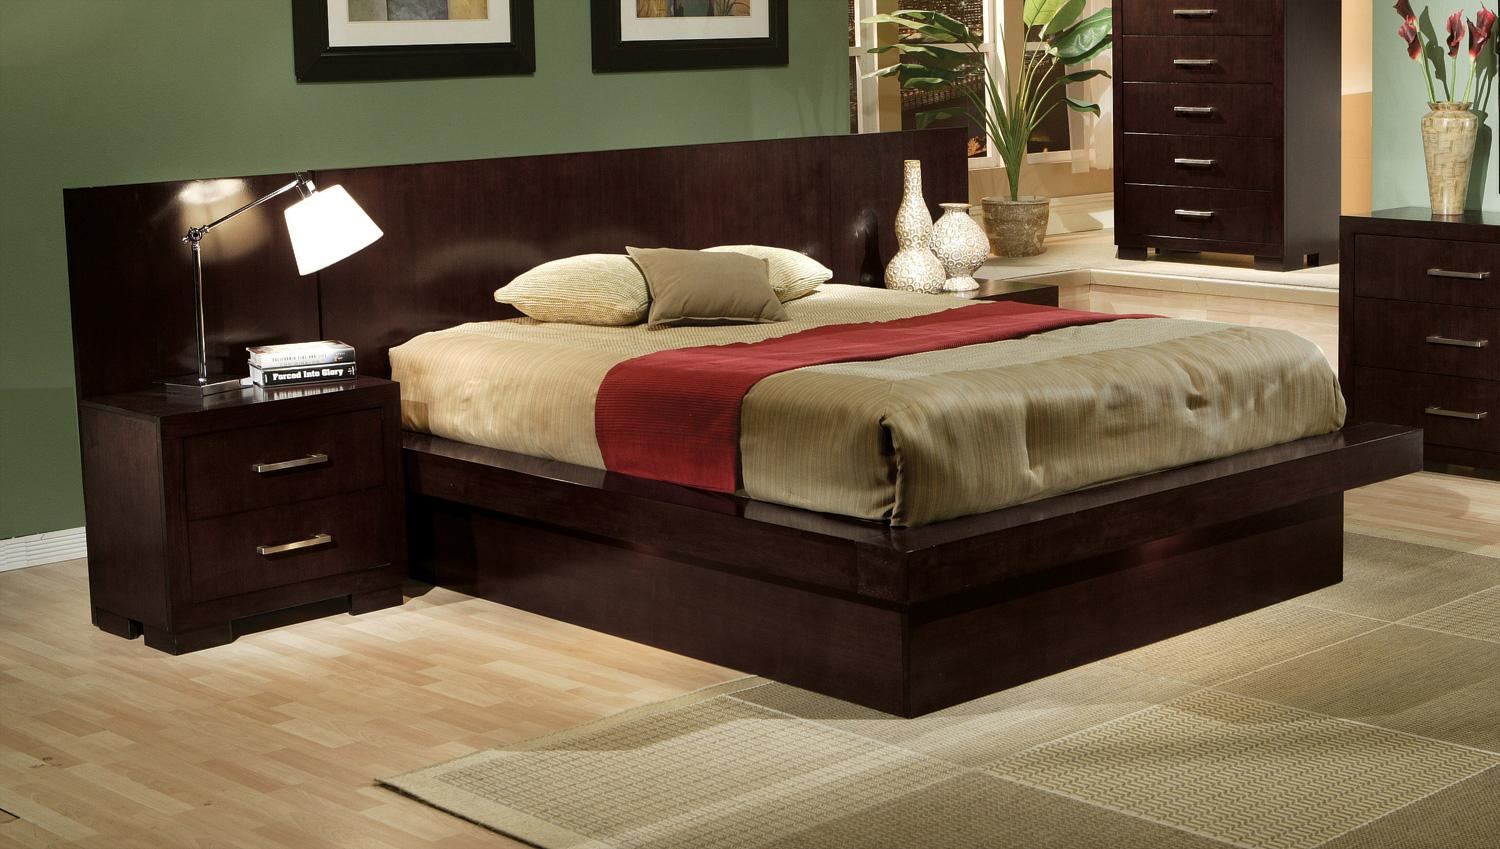 Modern 4 pc platform bed queen bedroom fairfax va for 3 bedroom set